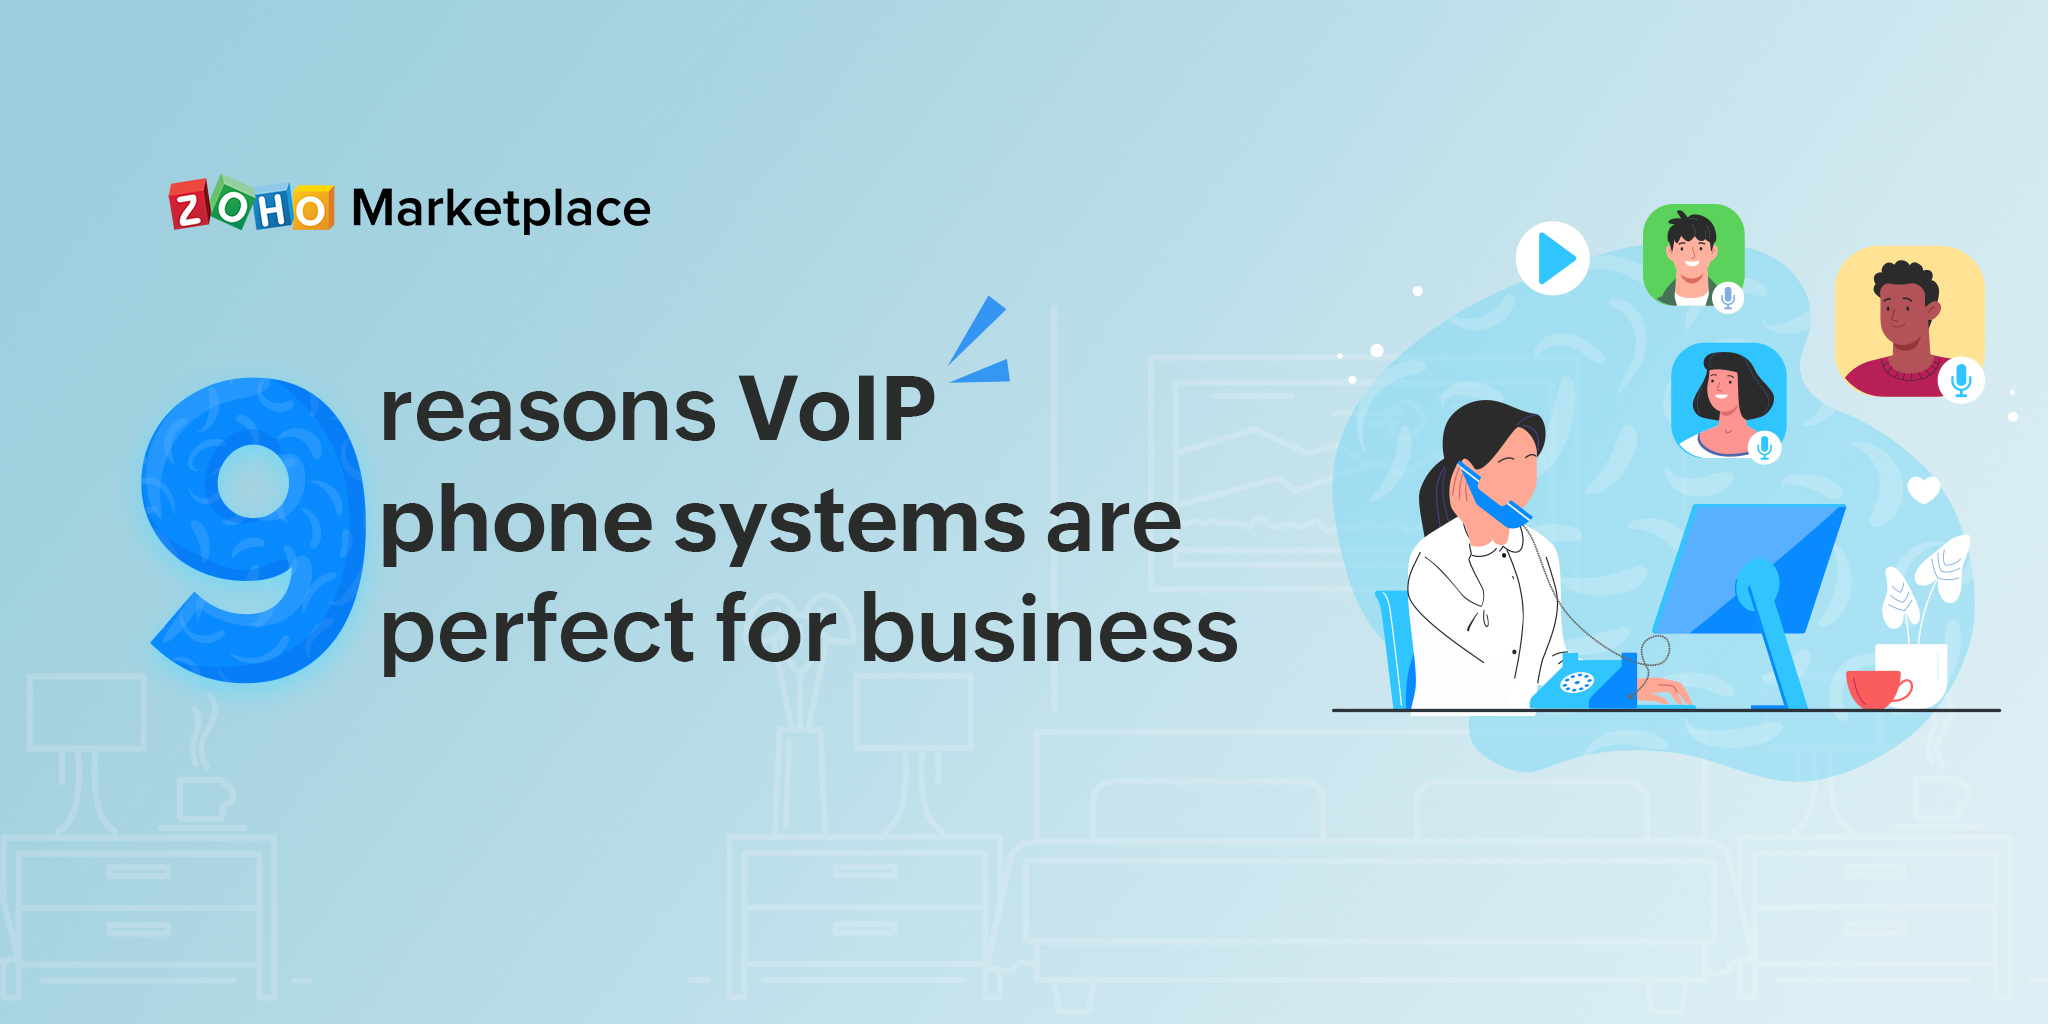 9 reasons VoIP phone systems are perfect for business